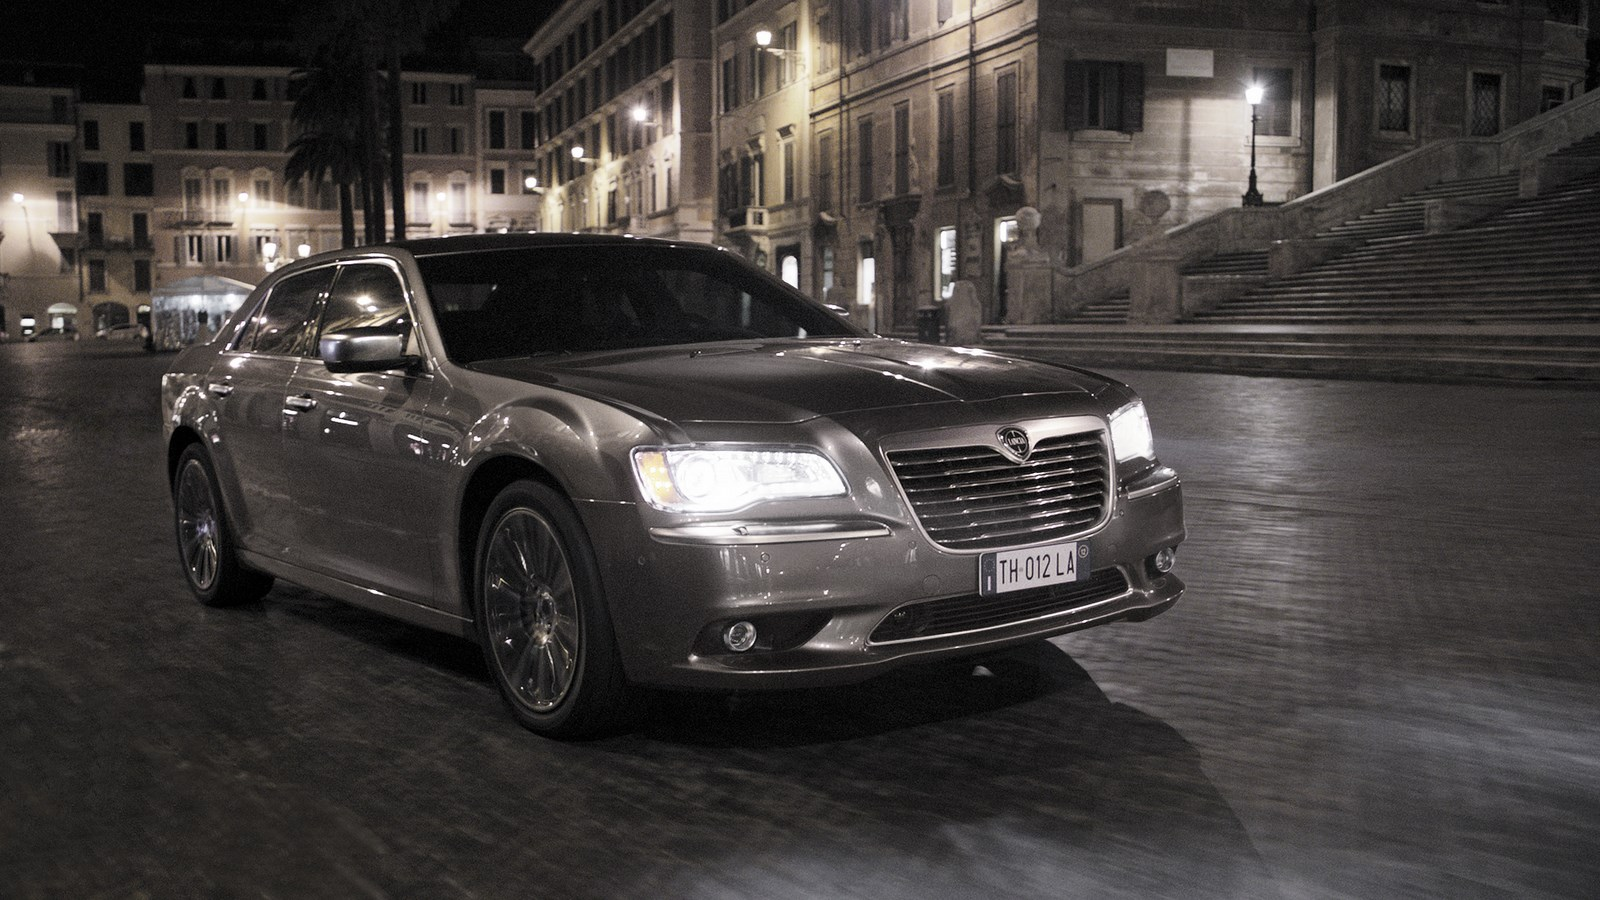 2016 lancia thema lx pictures information and specs. Black Bedroom Furniture Sets. Home Design Ideas